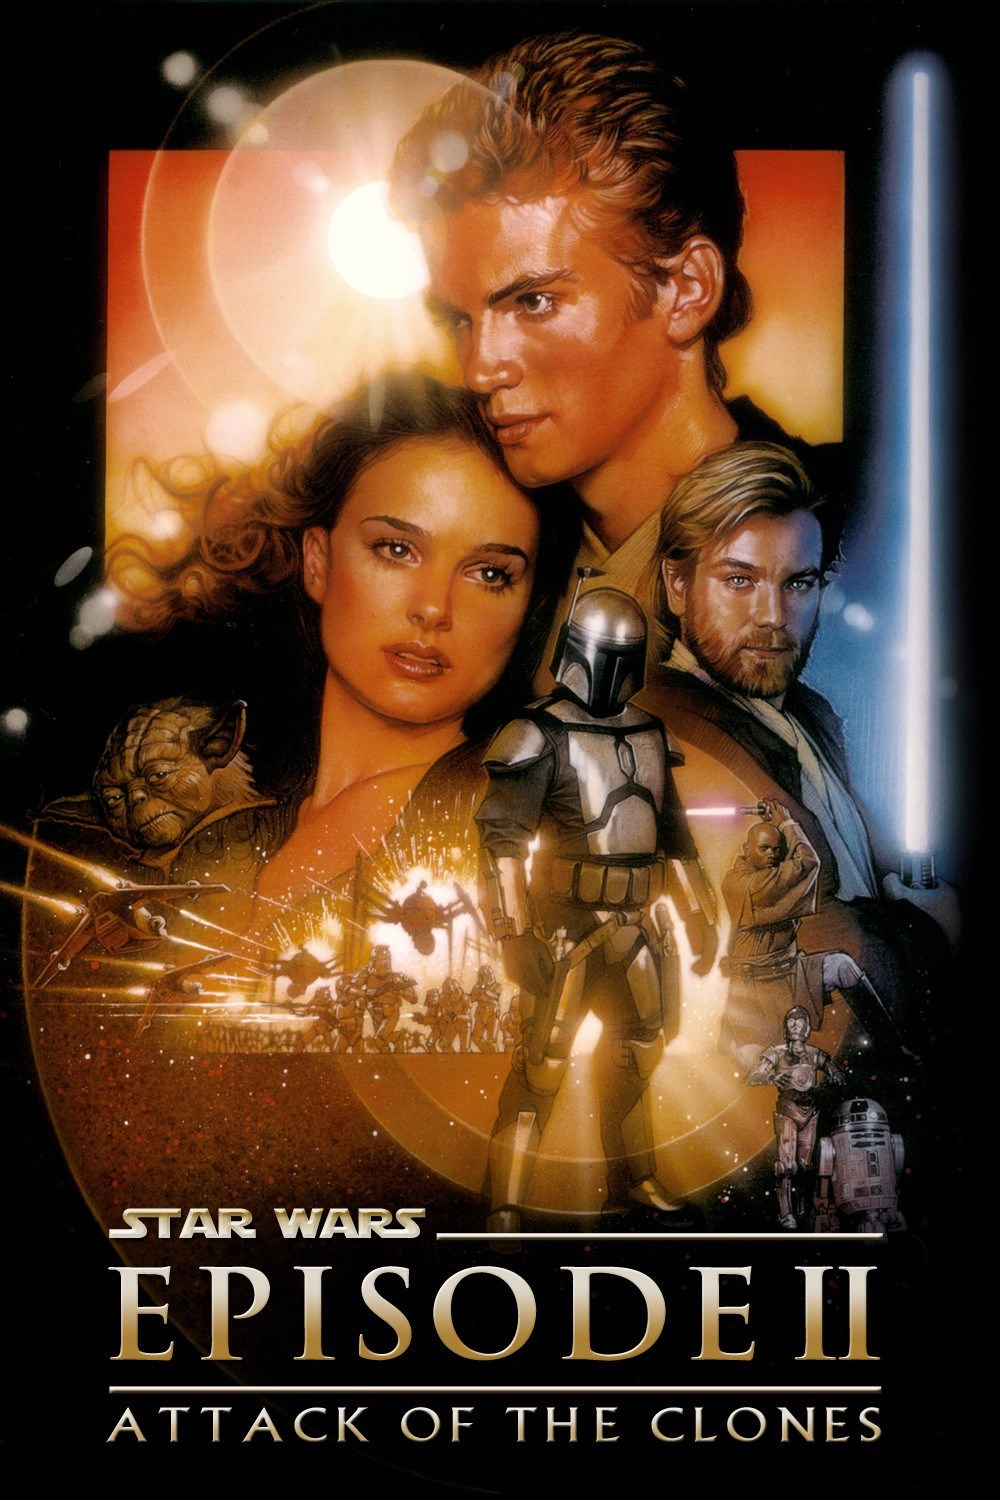 Star Wars Episode II: Attack of the Clones 2002